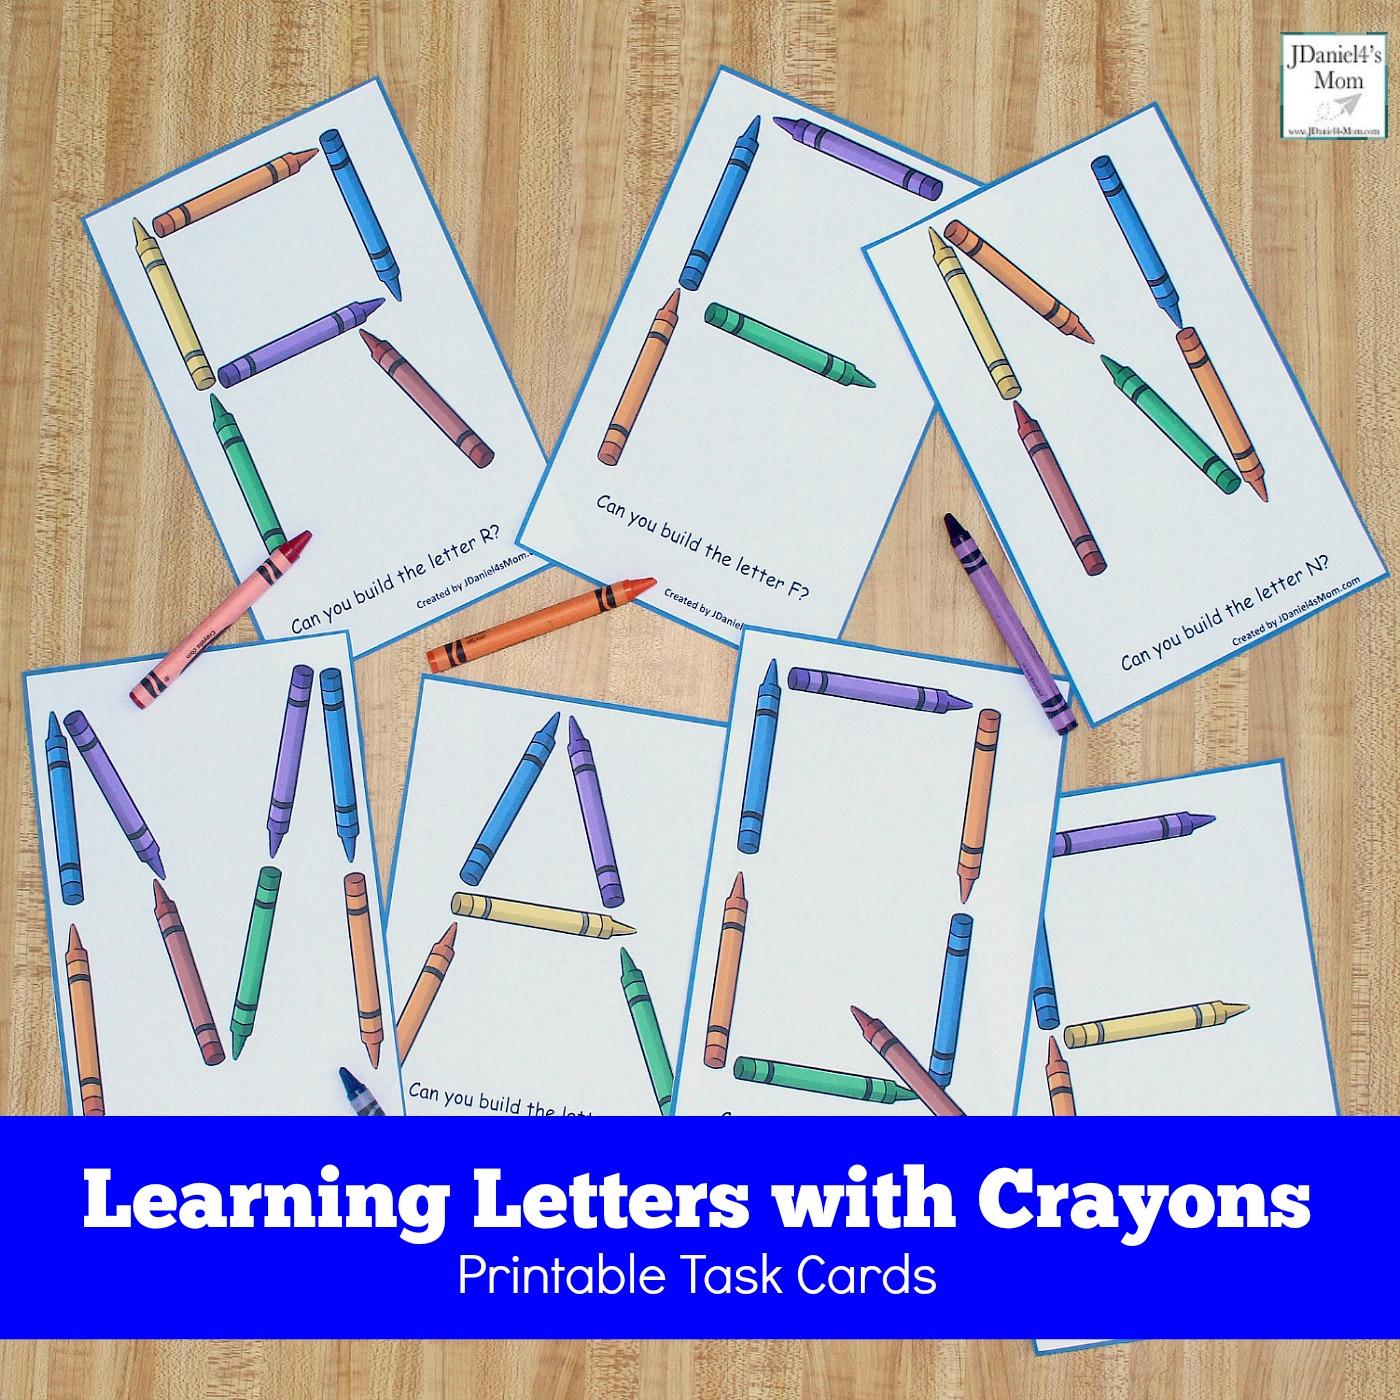 image regarding Crayon Printable titled Discovering Letters with Crayons Printable Undertaking Playing cards